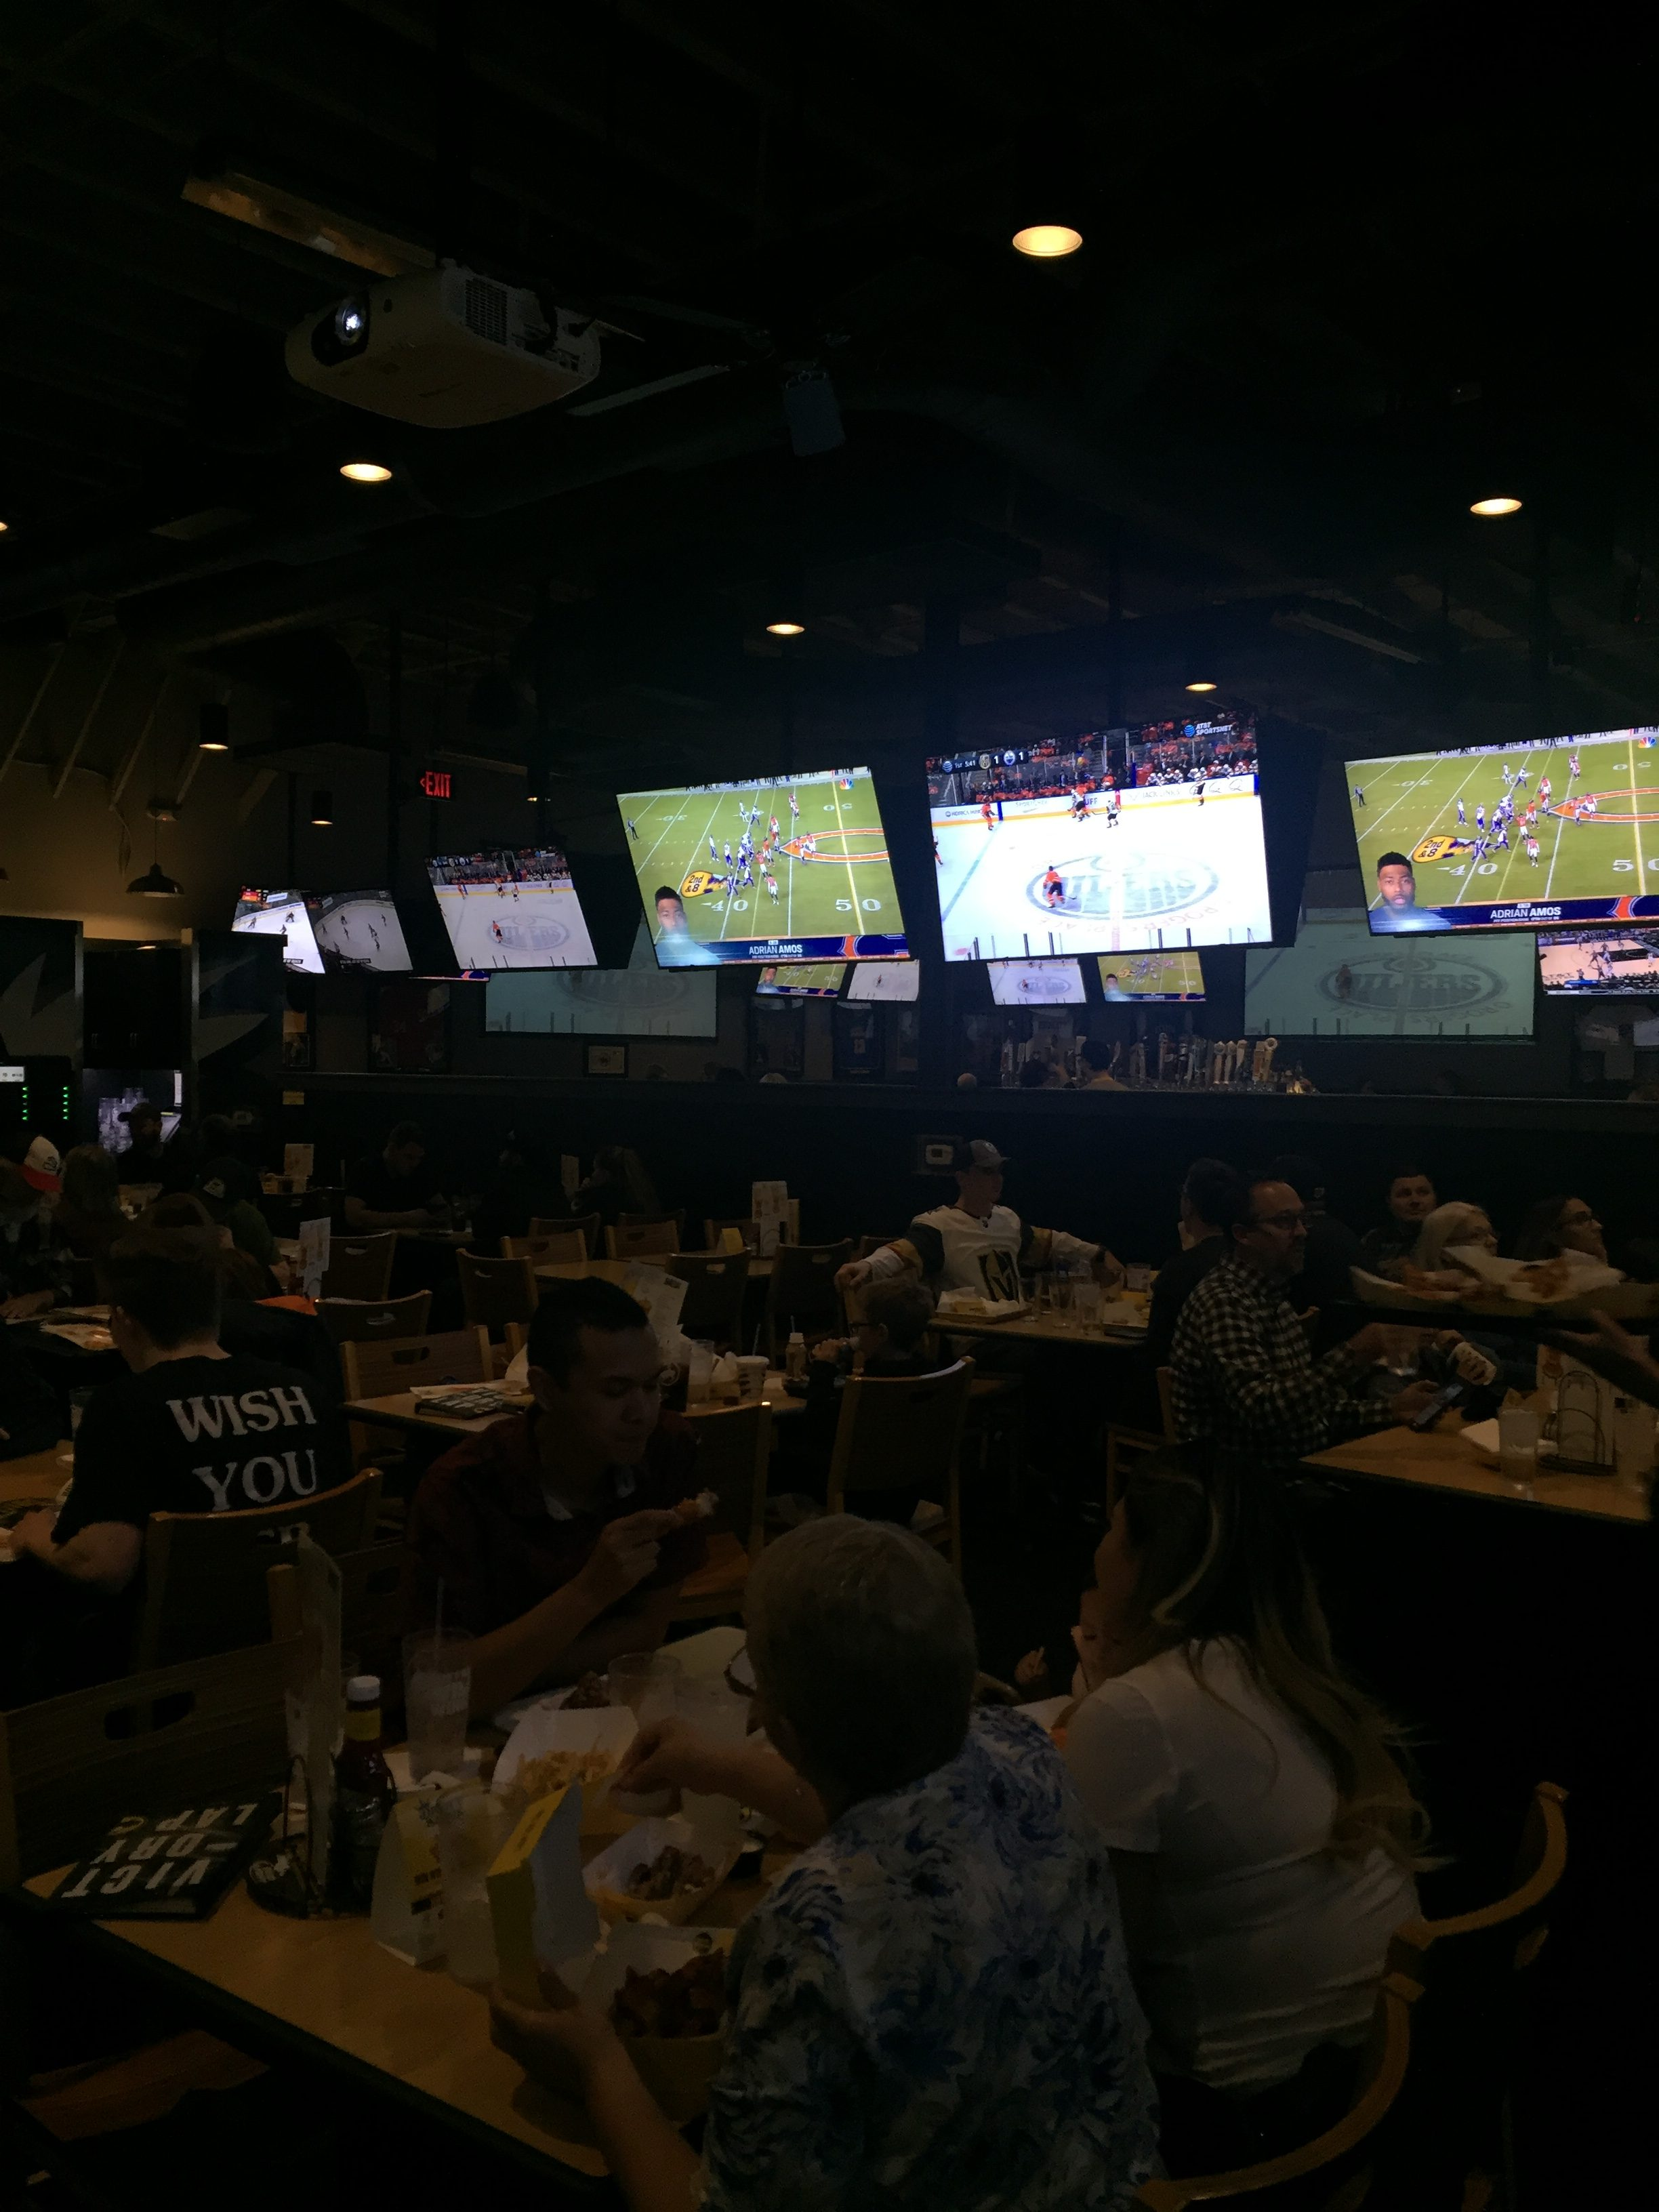 Family-Friendly VGK Watch Party: A Review of Buffalo Wild Wings